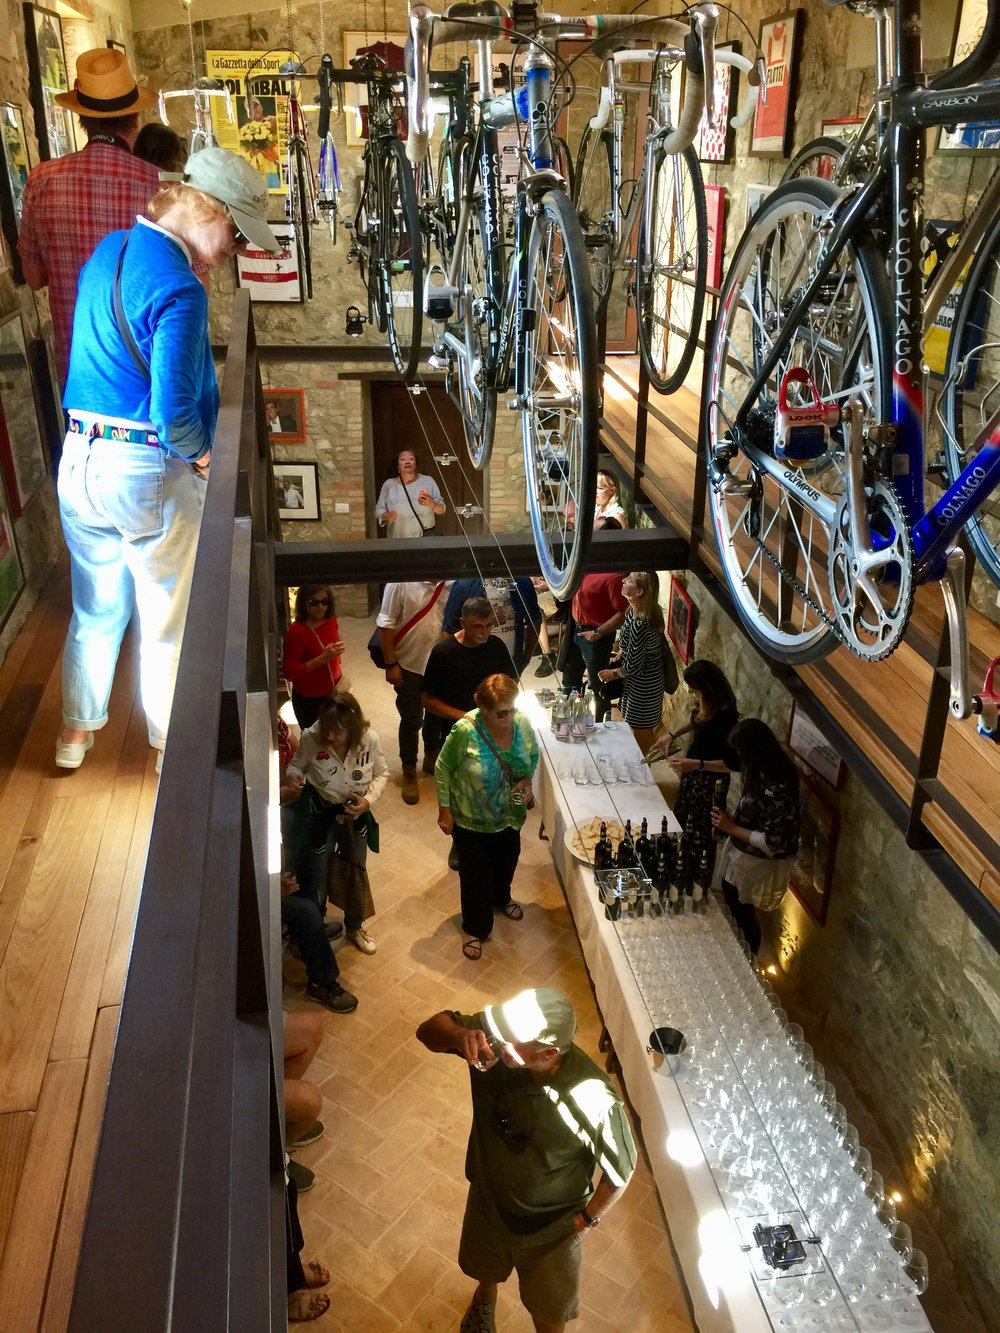 Wine tasting in the bicycle museum at Ciacci Piccolomini winery in Montalcino.